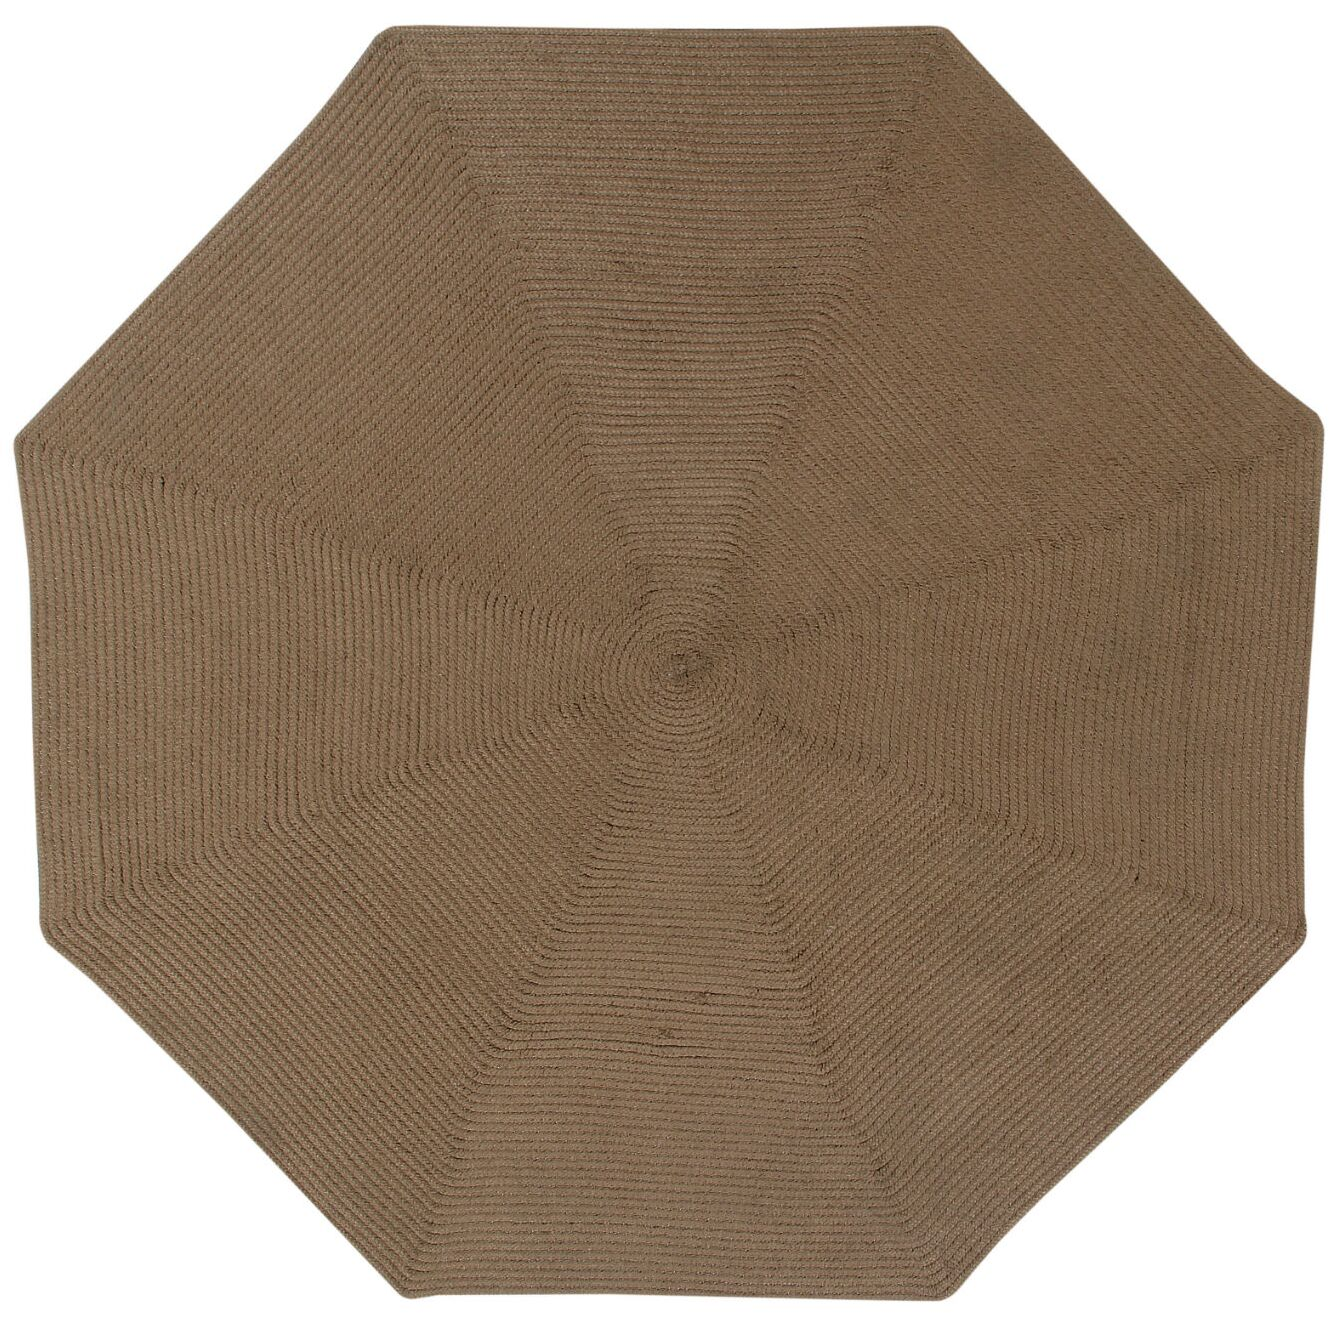 McClure Cocoa Area Rug Rug Size: Octagonal 6'